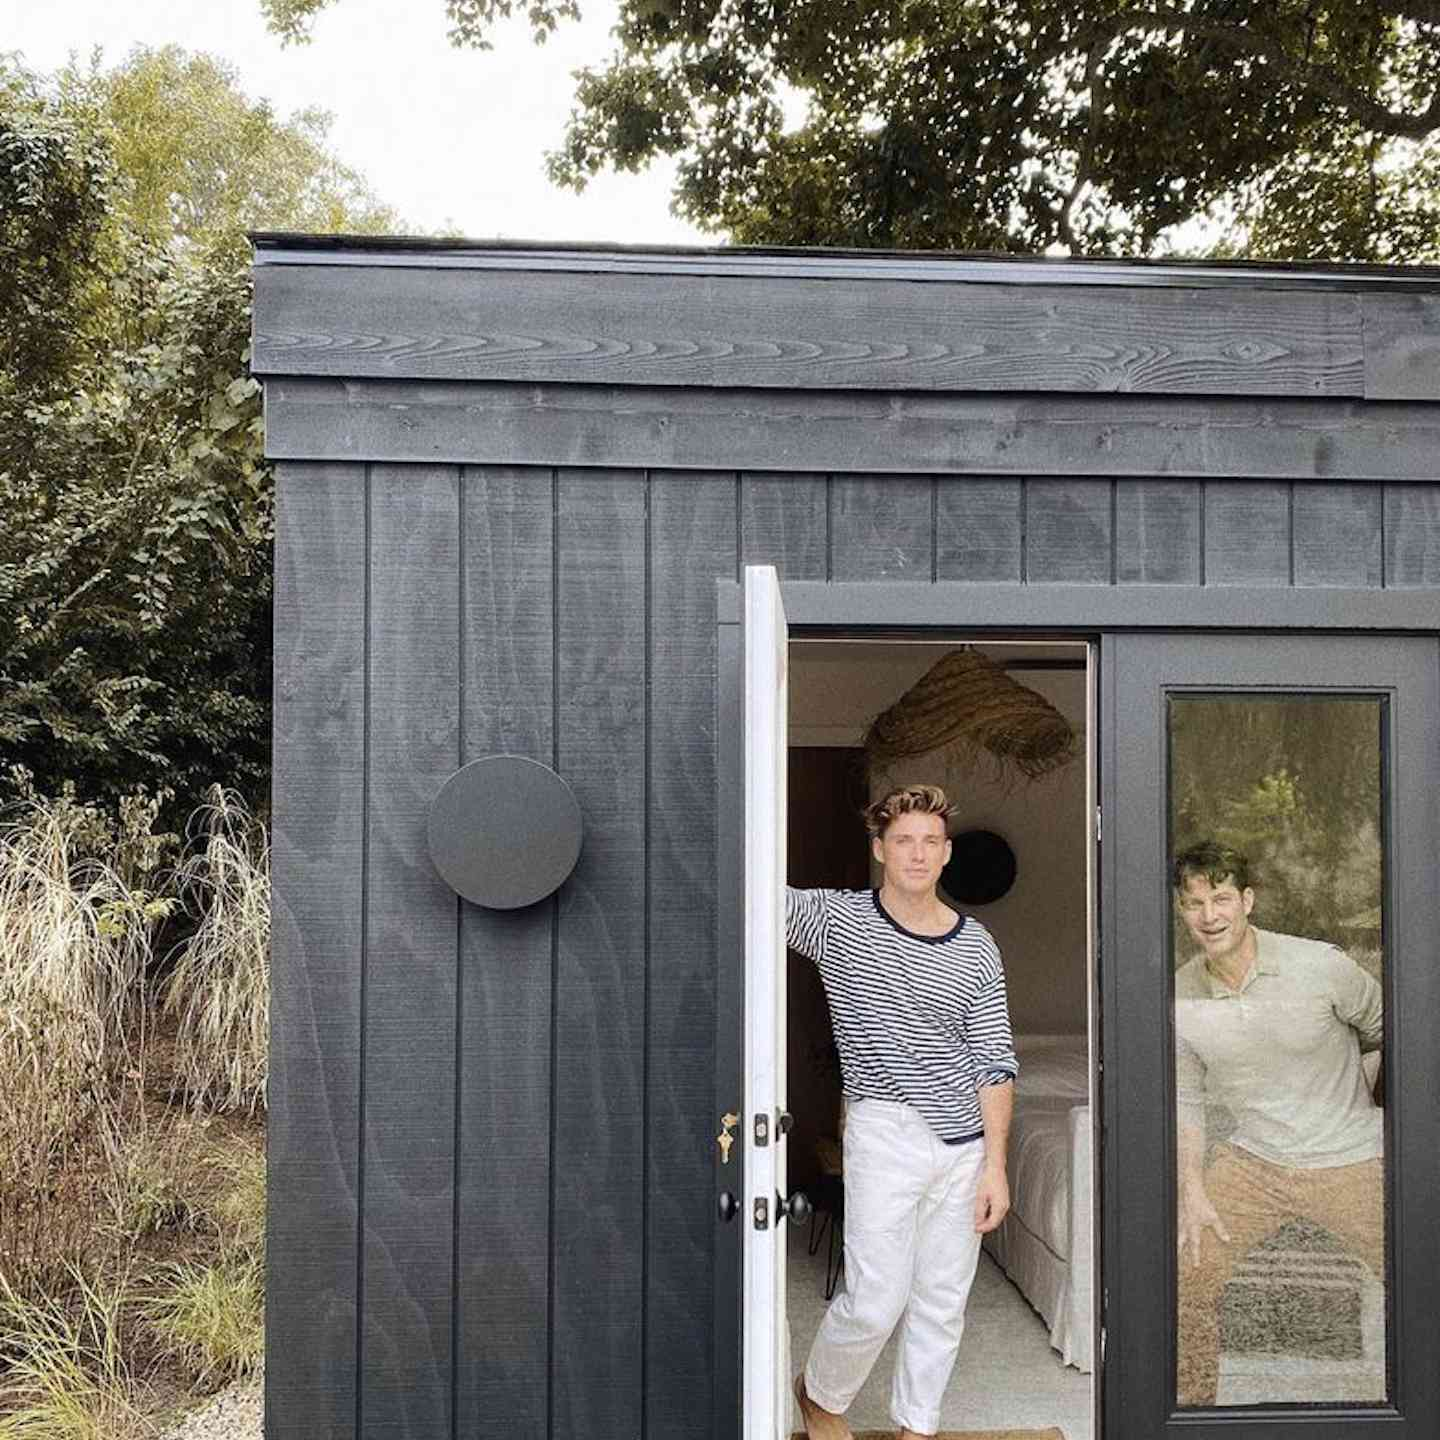 Nate Berkus and Jeremiah Brent in outdoor shed.